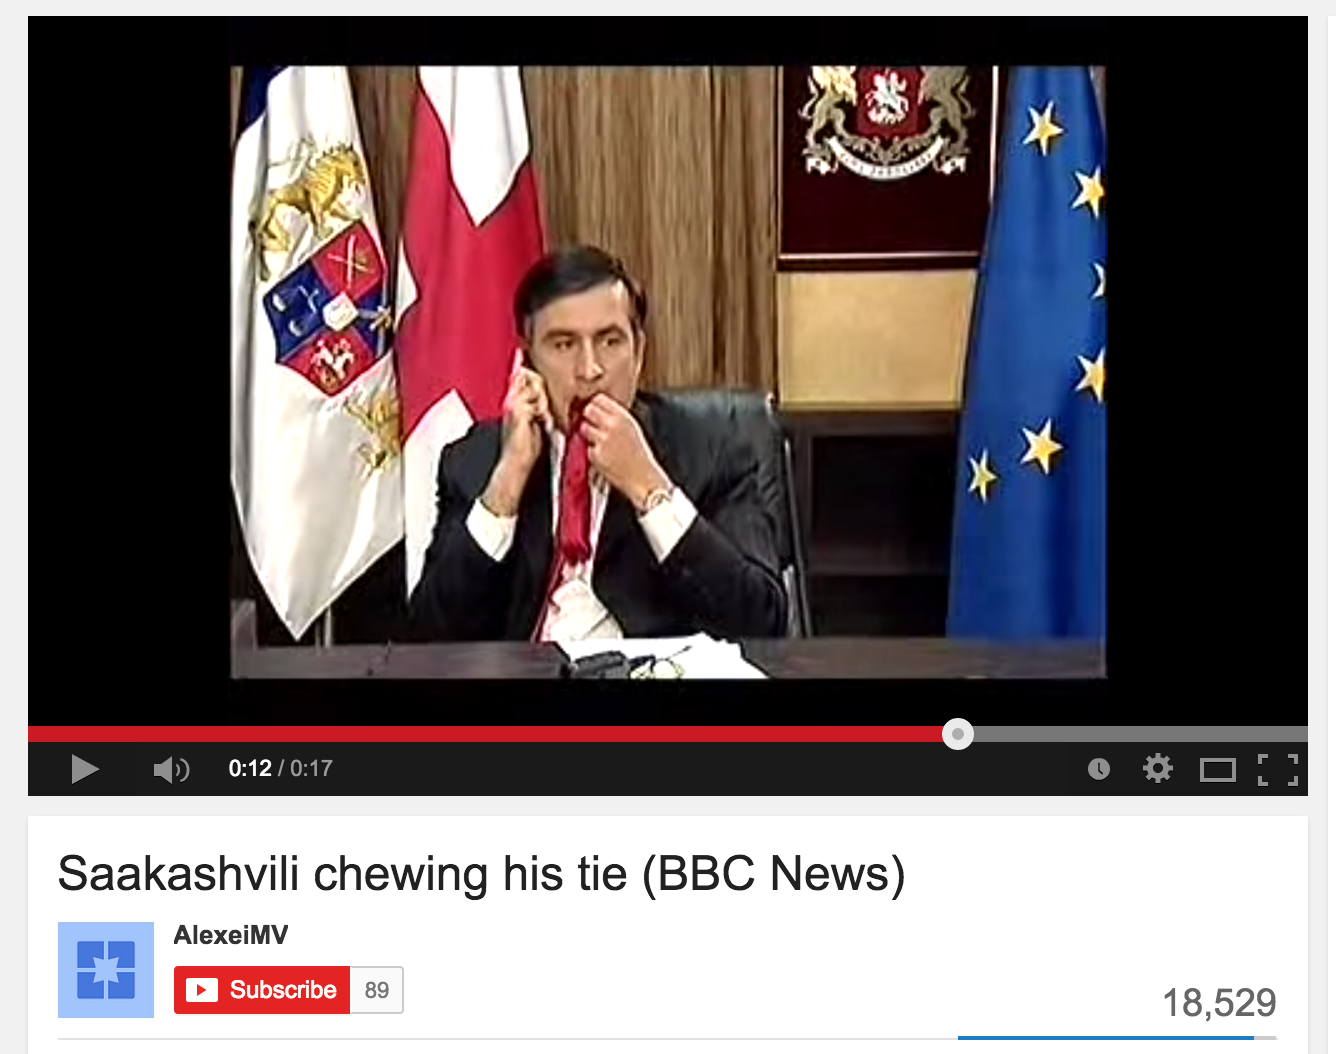 As Russian tanks neared Tbilisi, Georgia's president Mikheil Saakashvili gave an interview to the BBC during which he chewed on his red necktie. (YouTube)